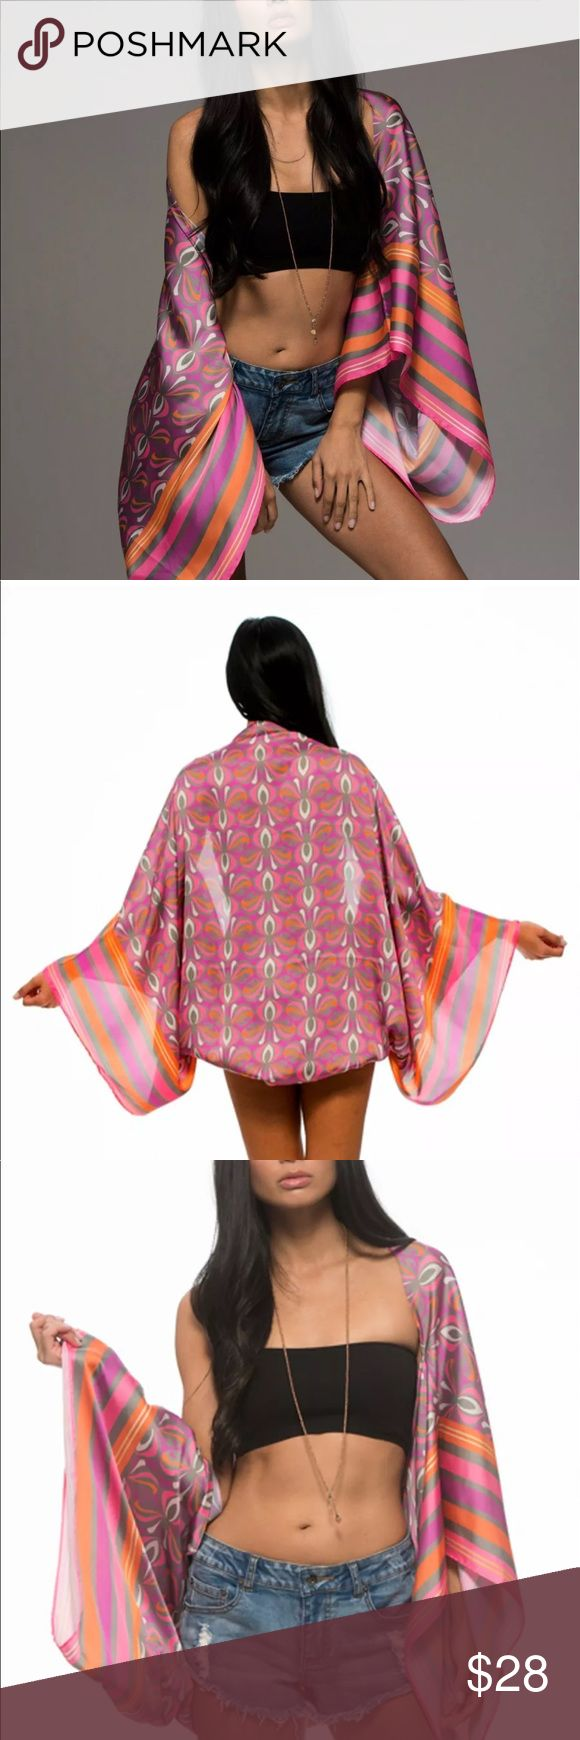 "Gypsy Lounge Pink Orange Satin Bolero Poncho Wrap Macbeth Collection Retail $60.00 The GIO BEACH BOLERO is your most versatile piece this season.  In a silky hand feel the vibrant prints are super luxurious.  Can be worn as a bolero / cape or a scarf.  Pair with the Matching Maxi (sold separately) Perfect piece to throw on with a tank and jeans,  Pop over a bikini or drape around your shoulders for dressy glam.  Shades of Pink, Neon Pink, Pale Olive, Tangerine 100% Polyester  Length: 56""…"